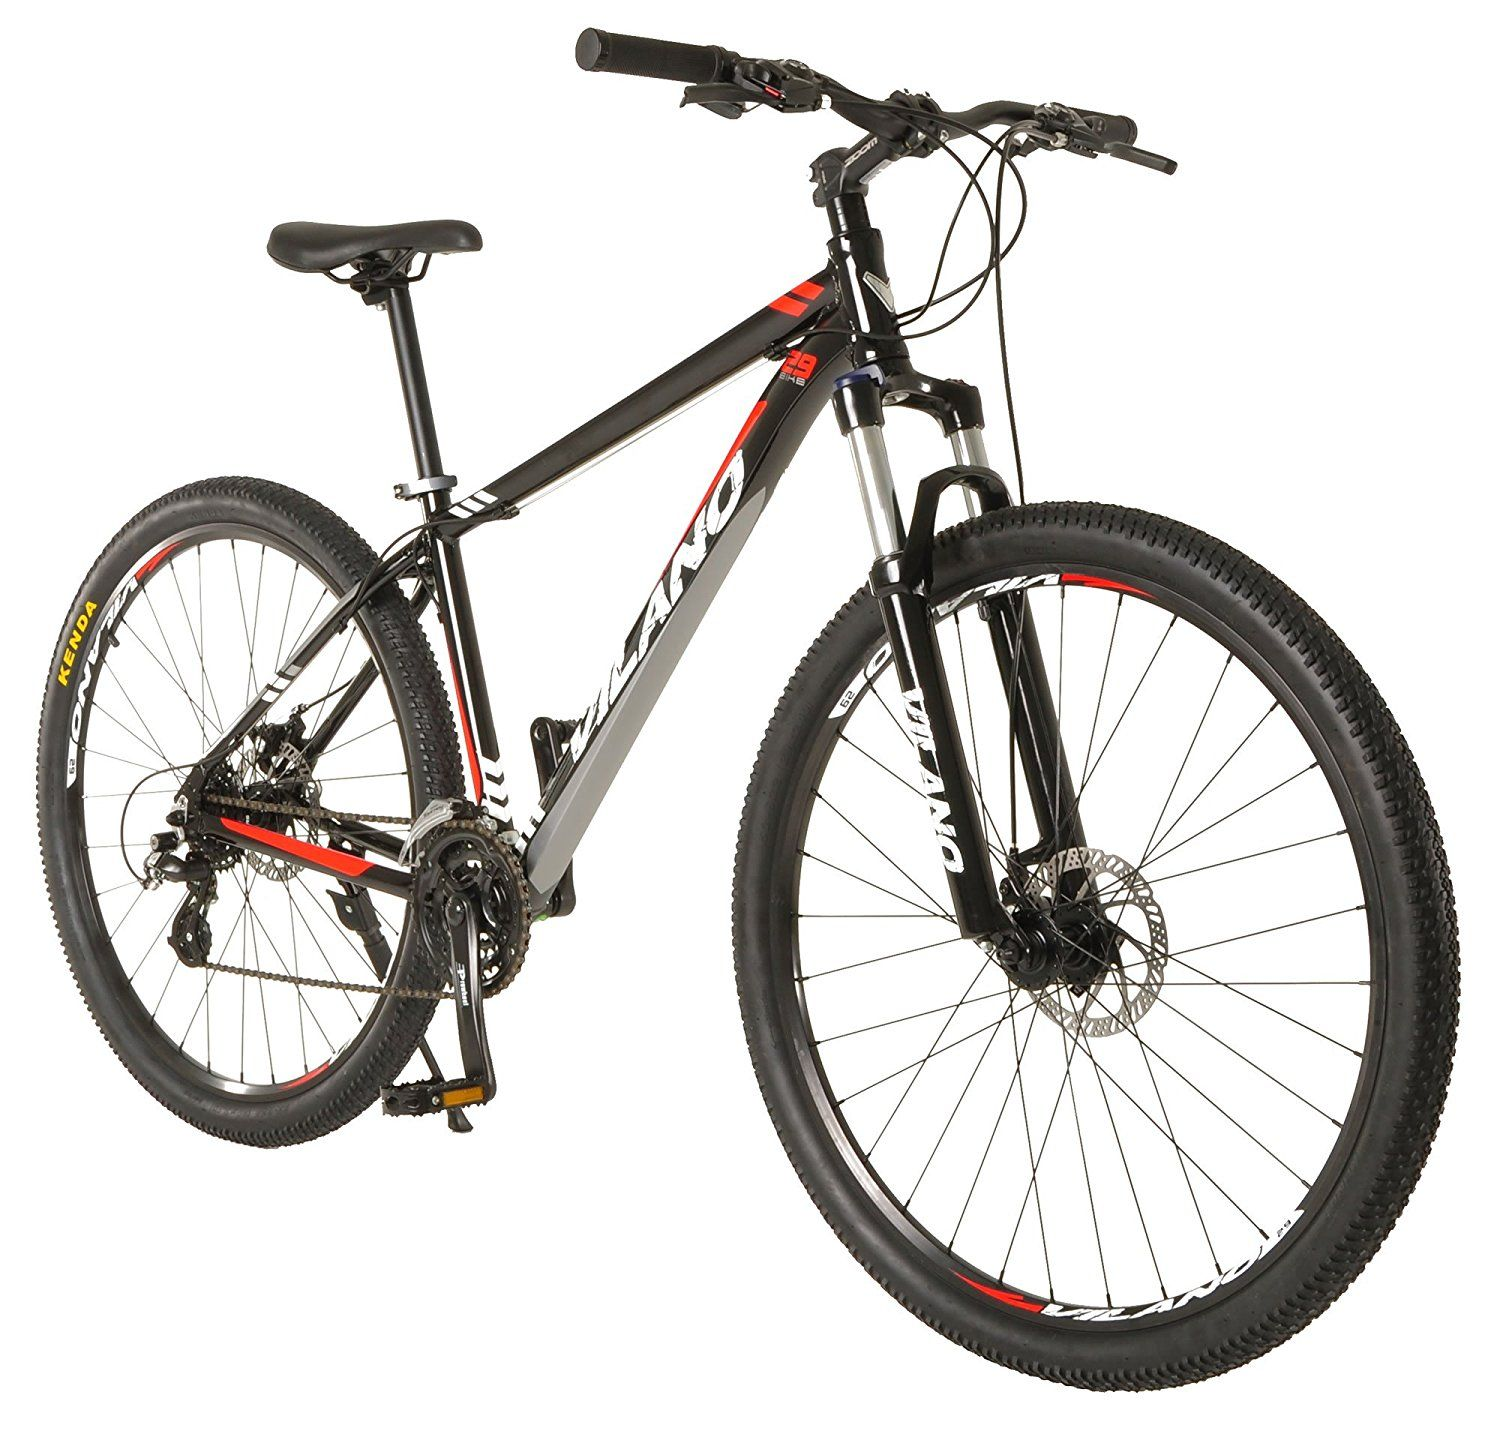 The 10 Best Mountain Bikes Under 300 Dollars Ultimate Guide 2020